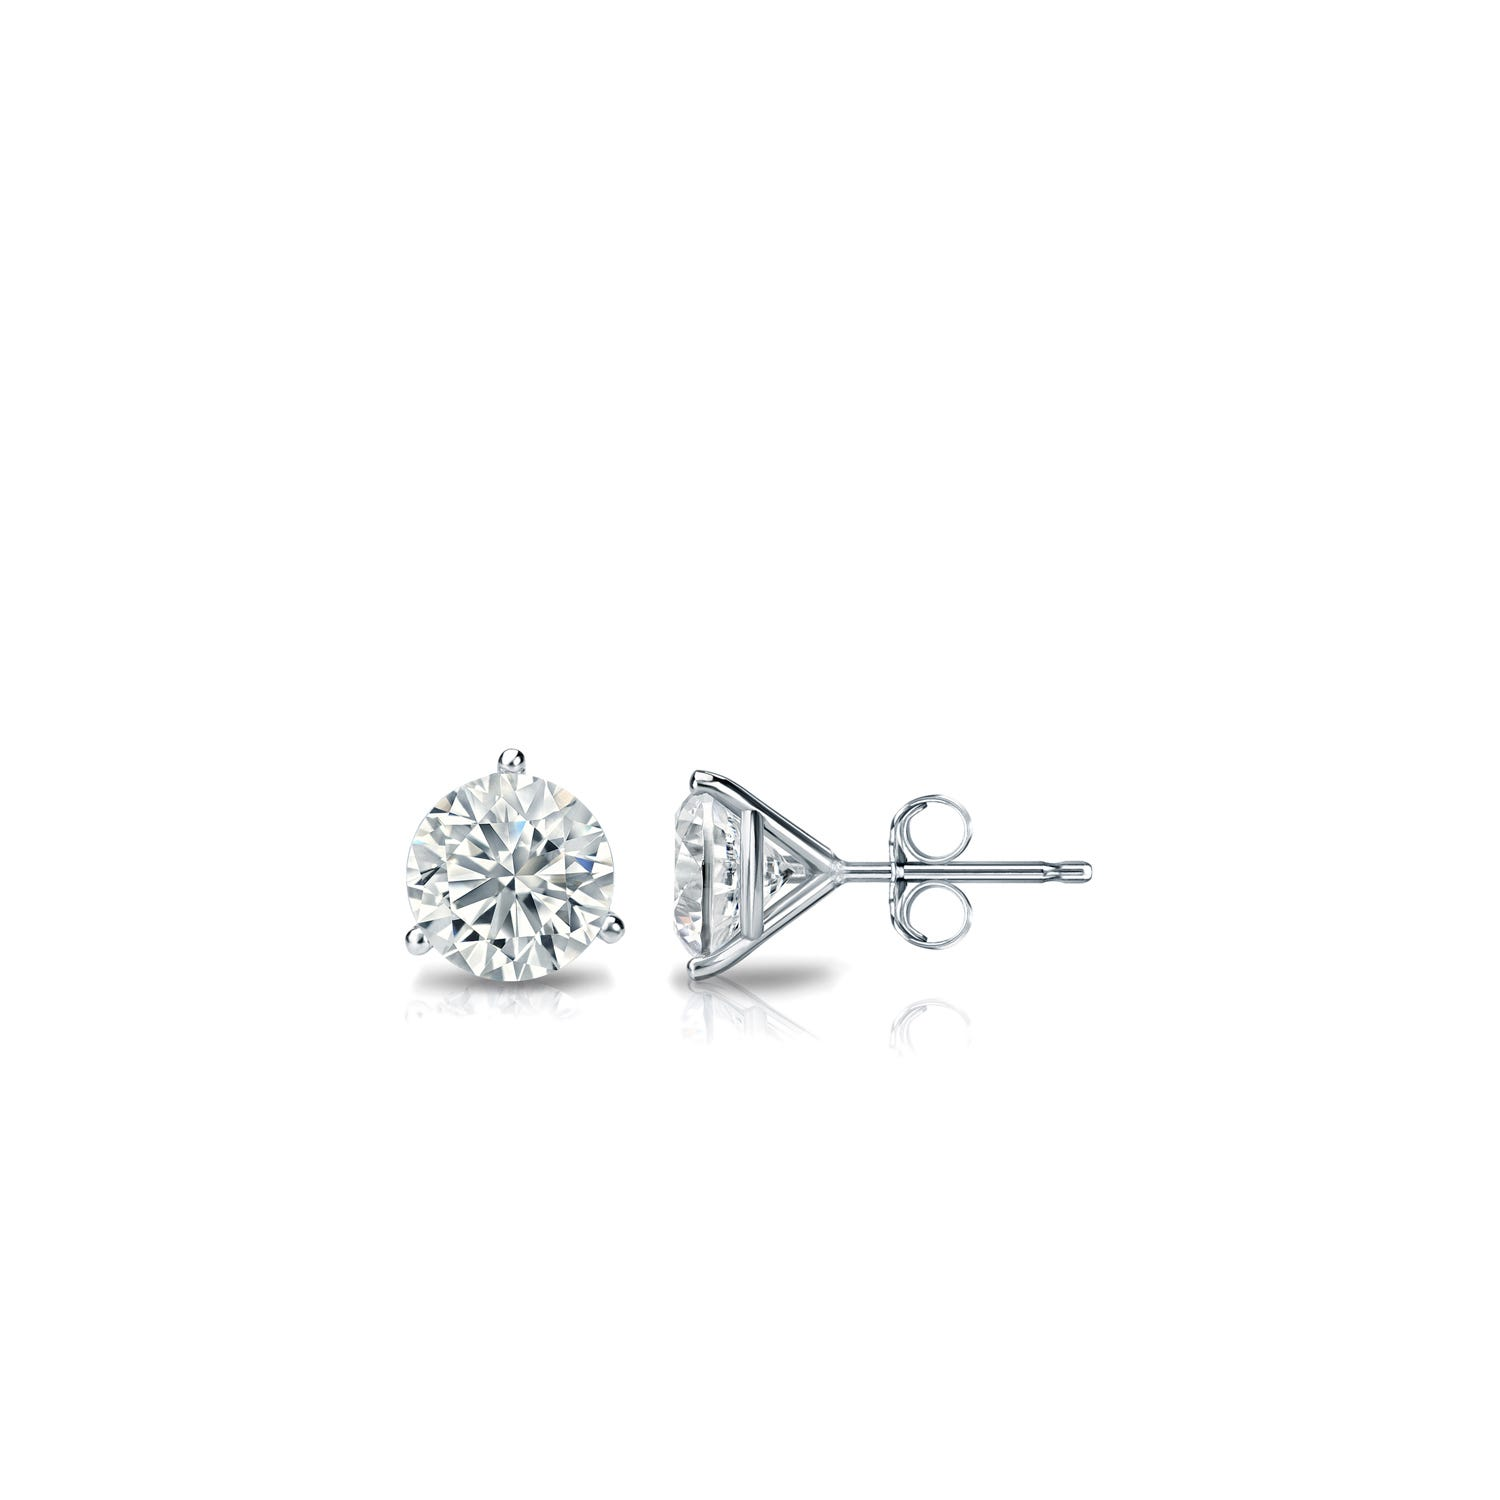 1/6 CTTW Round Diamond Solitaire Stud Earrings IJ SI1 in Platinum 3-Prong Setting